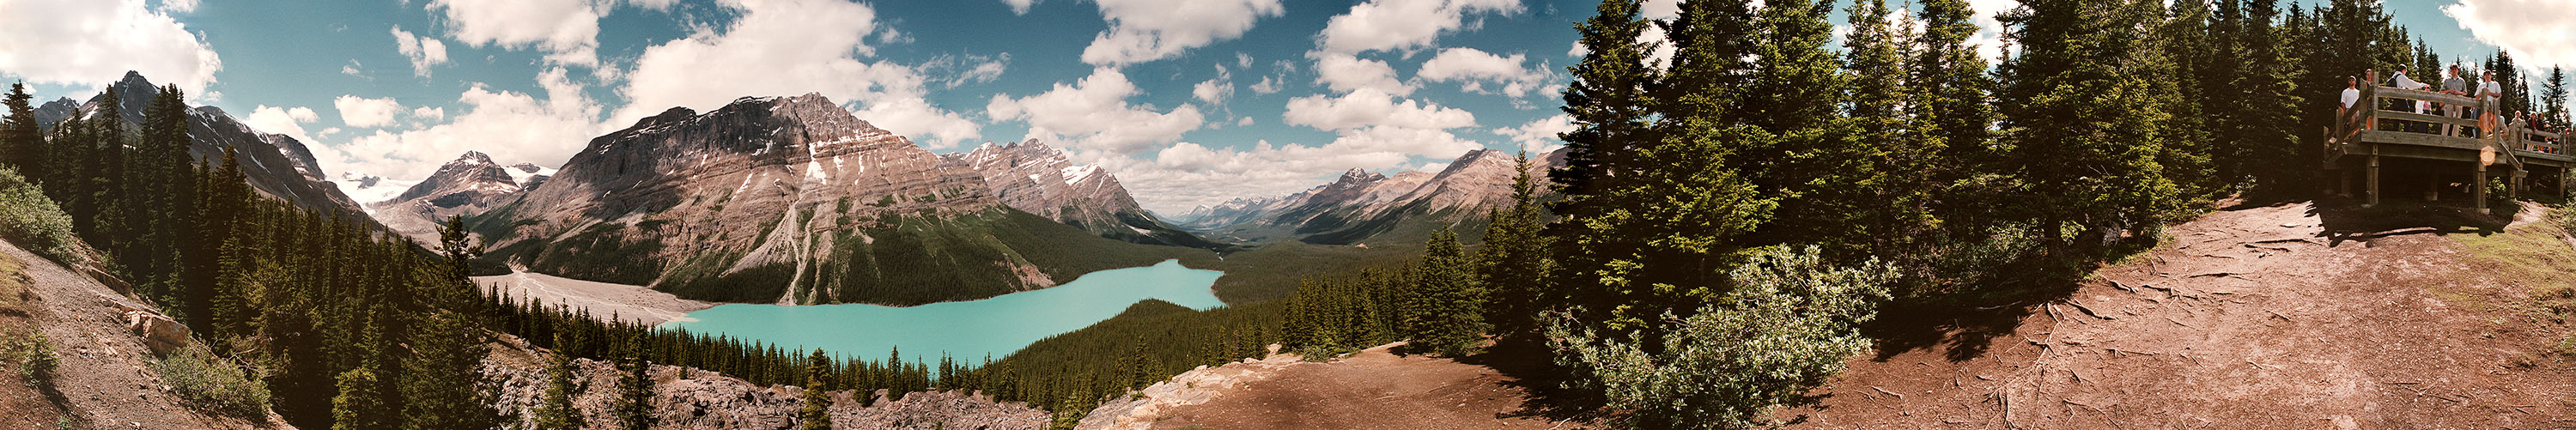 This 360 panorama is from Peyto Lake, Canada